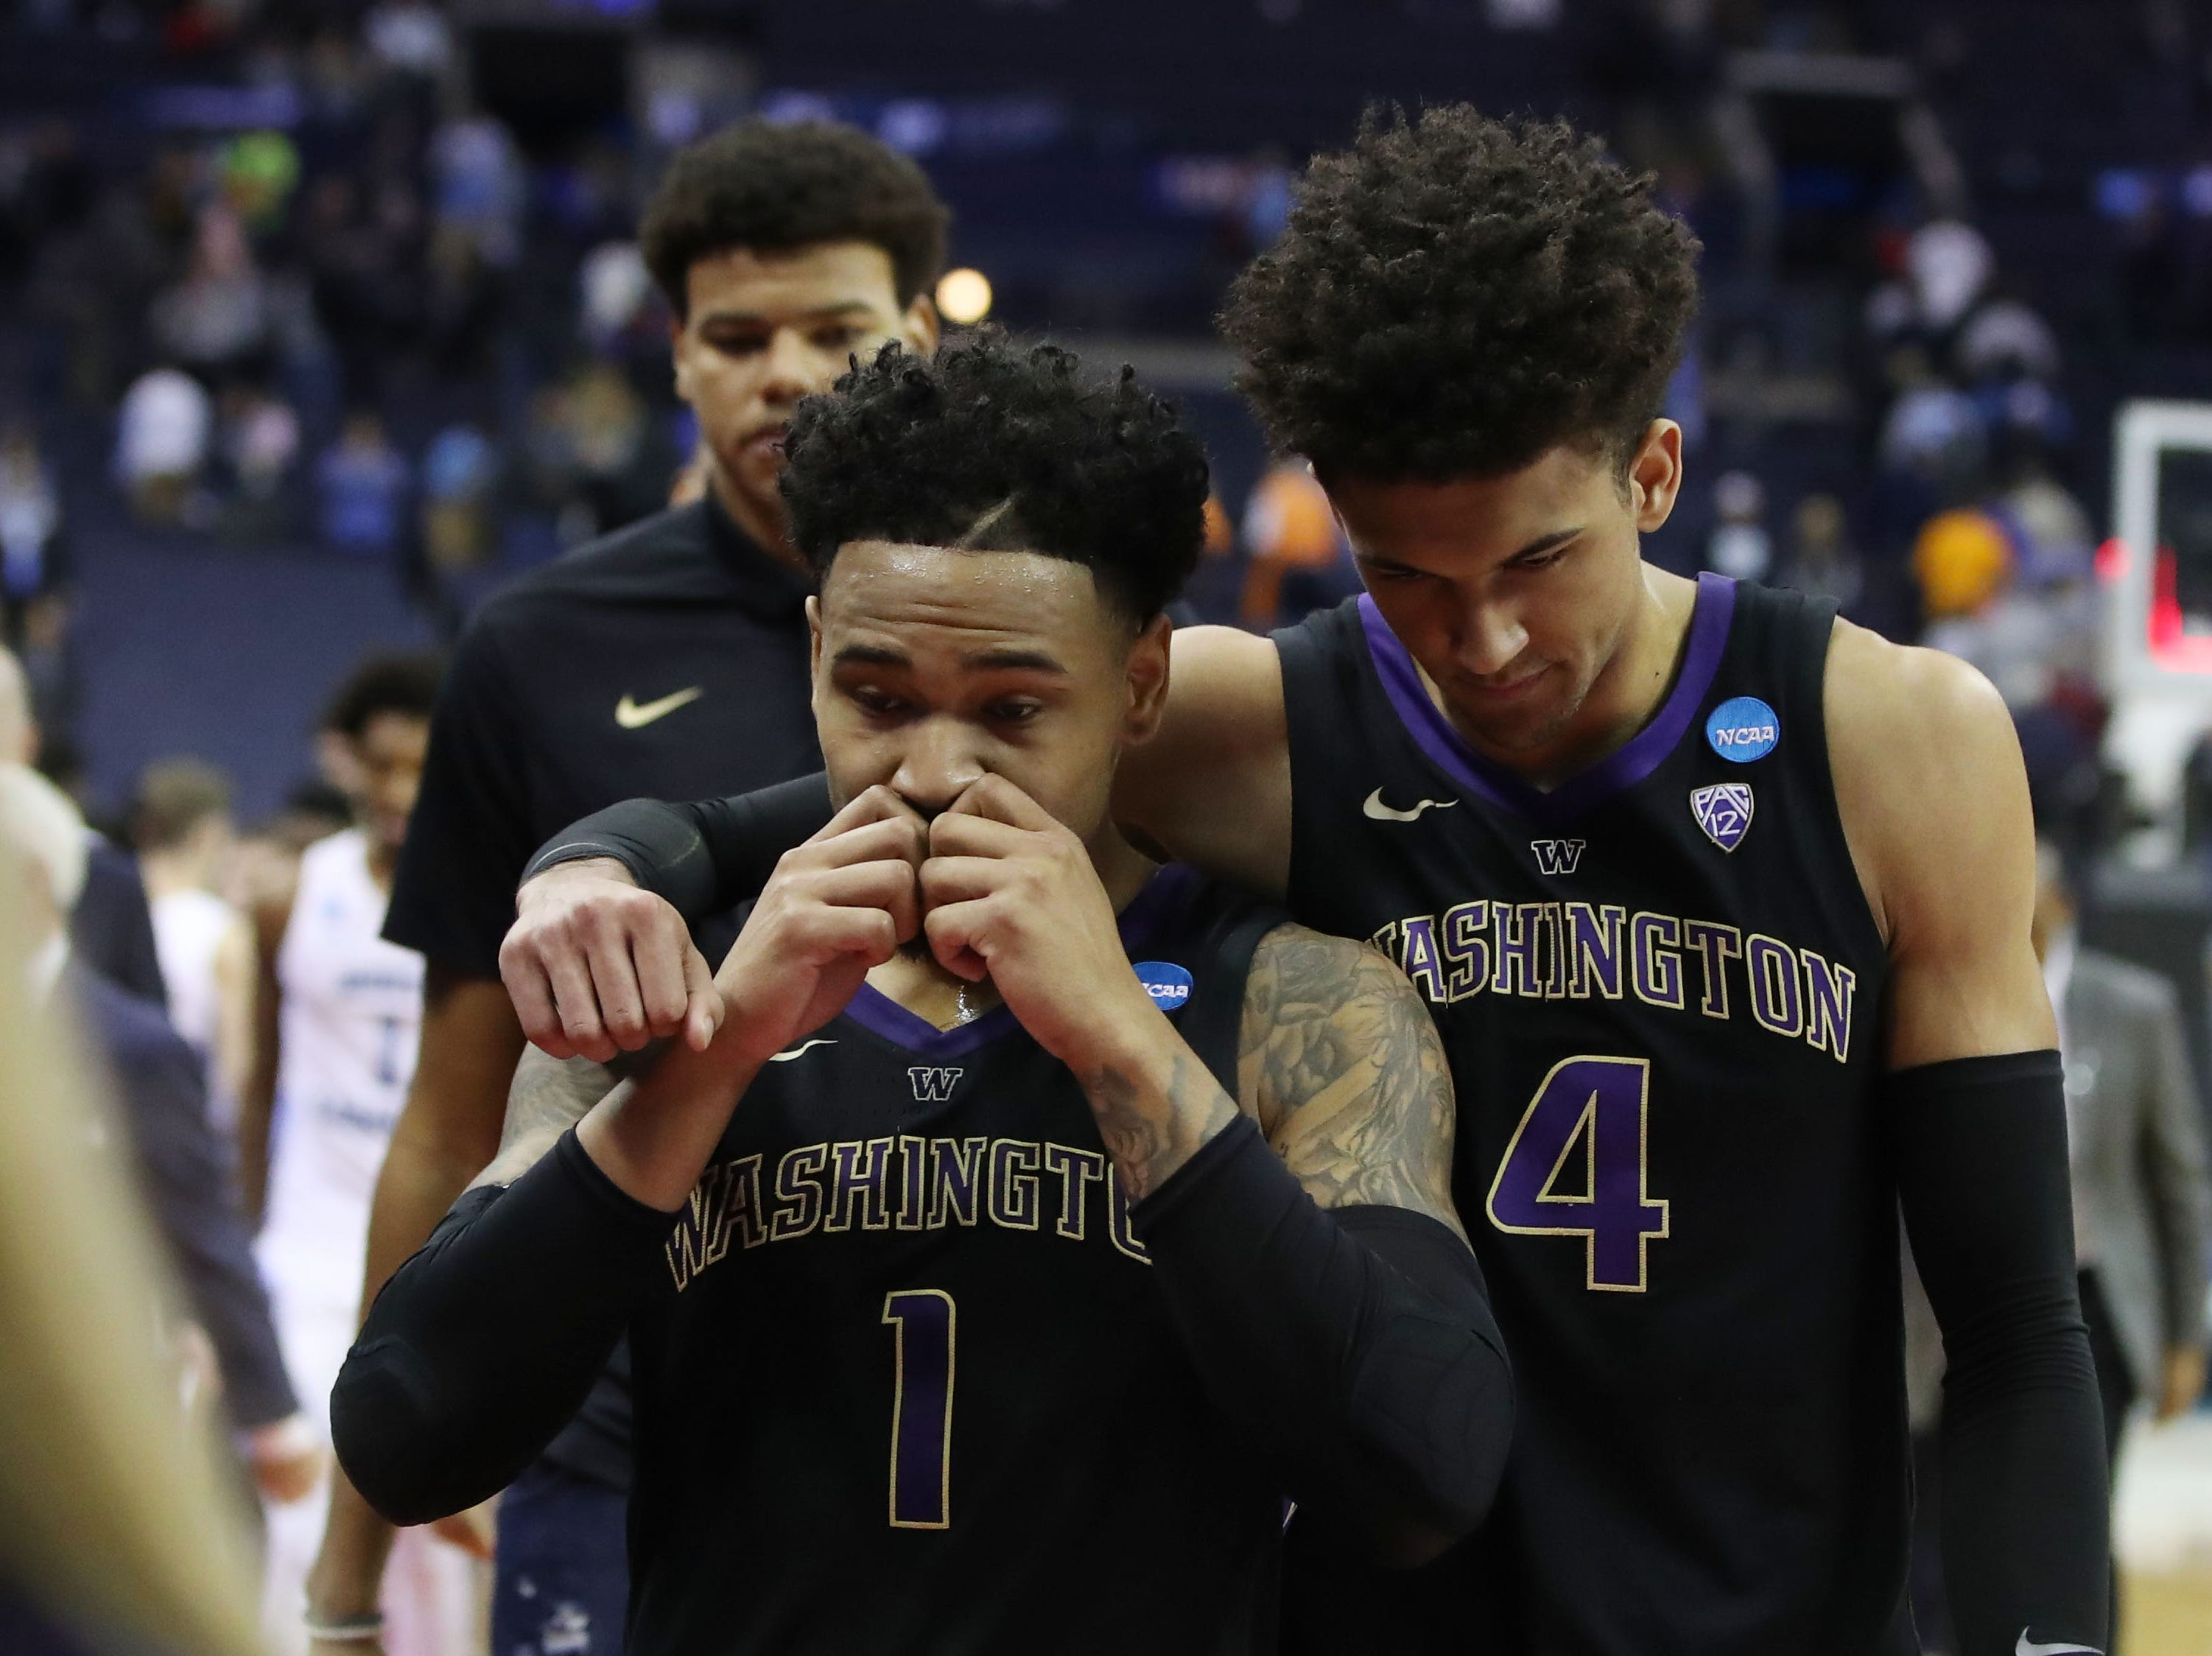 Round of 32: No. 9 Washington loses to No. 1 North Carolina, 81-59.